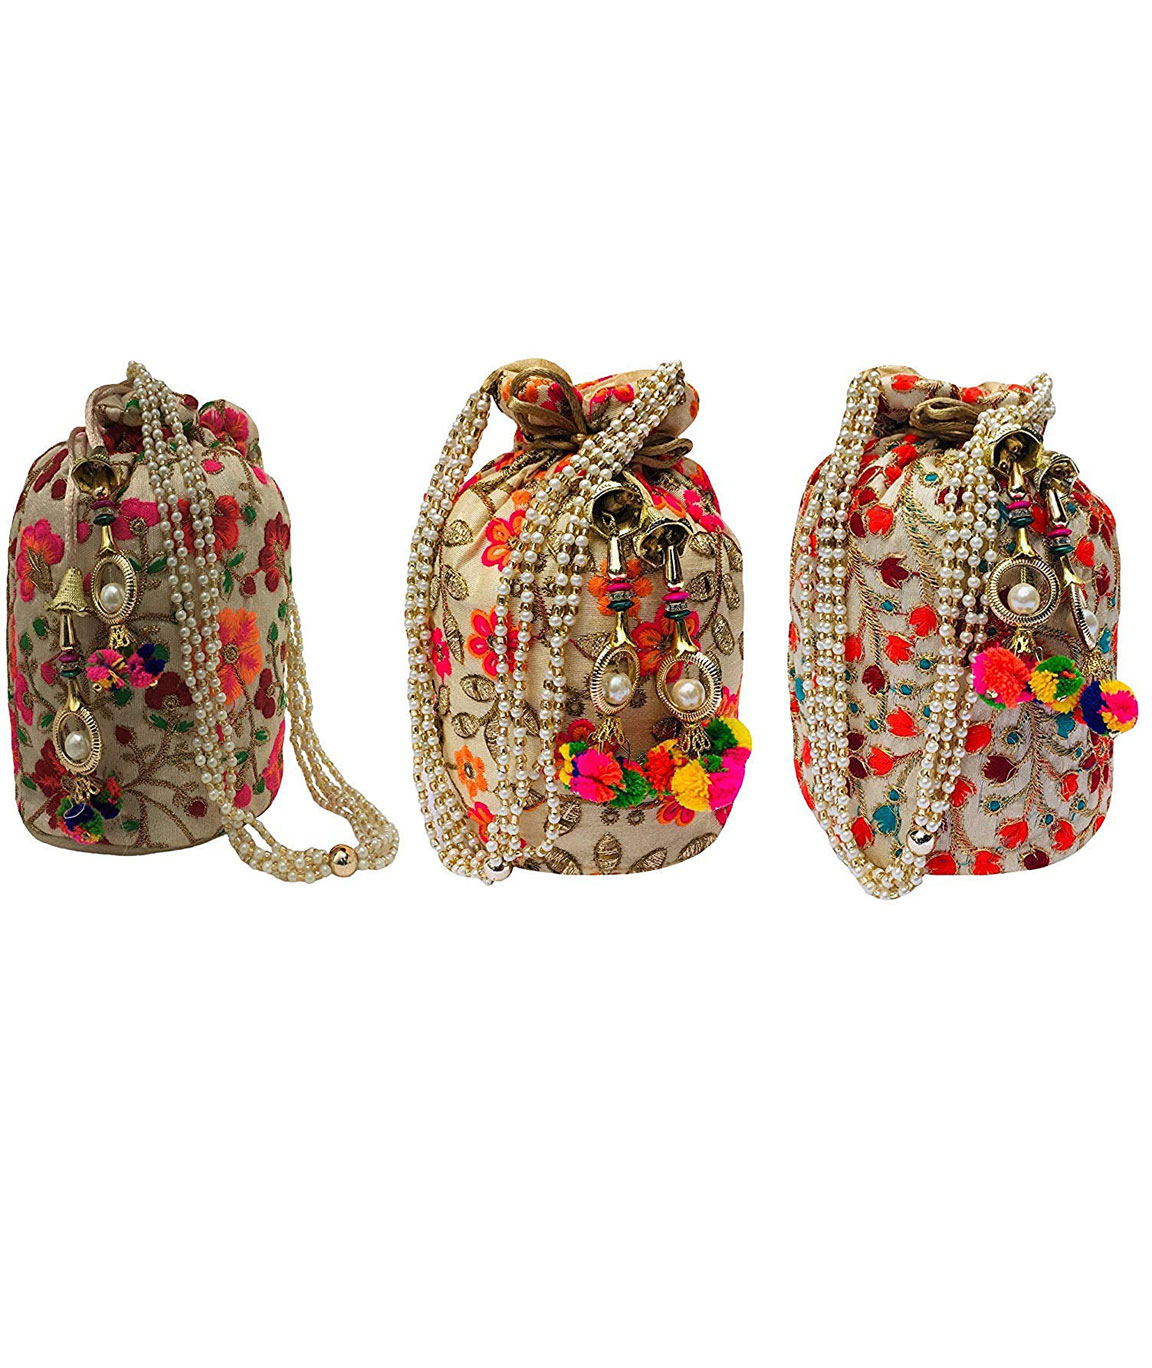 DN Enterprises Rajasthani Embrodired Royal Designer Potli Bag